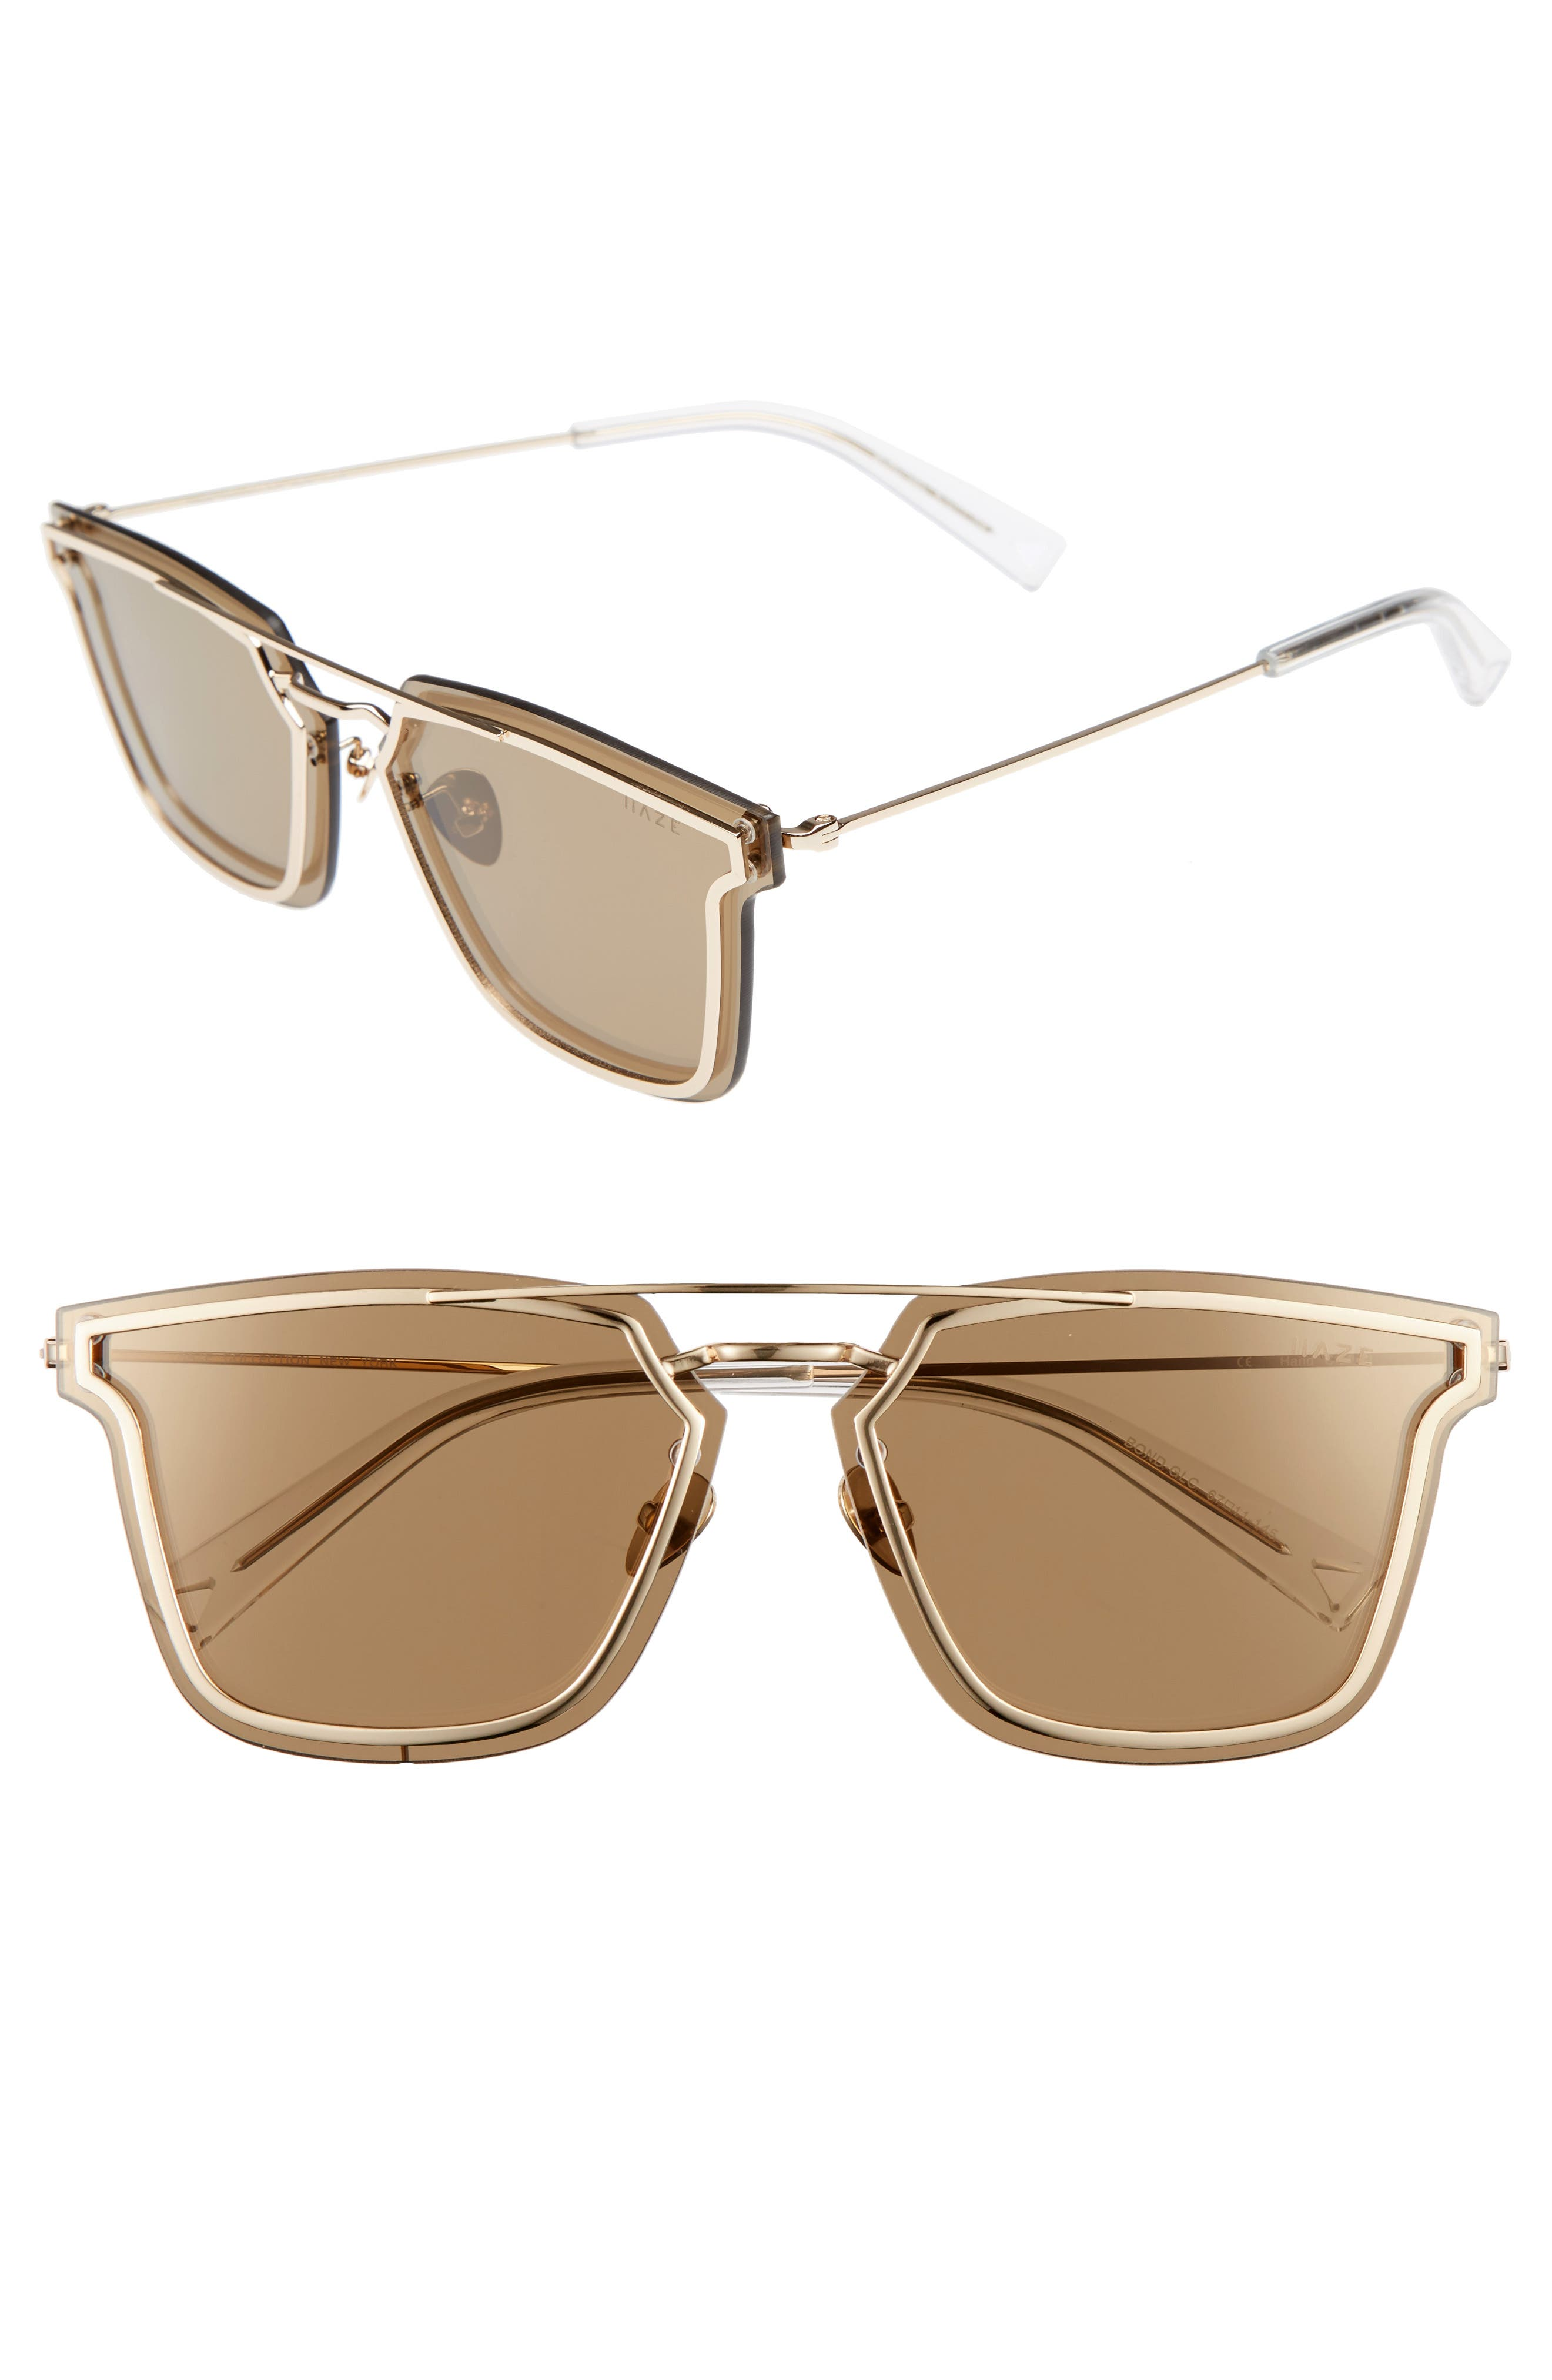 Bond 67mm Oversize Mirrored Sunglasses,                             Main thumbnail 1, color,                             Golden